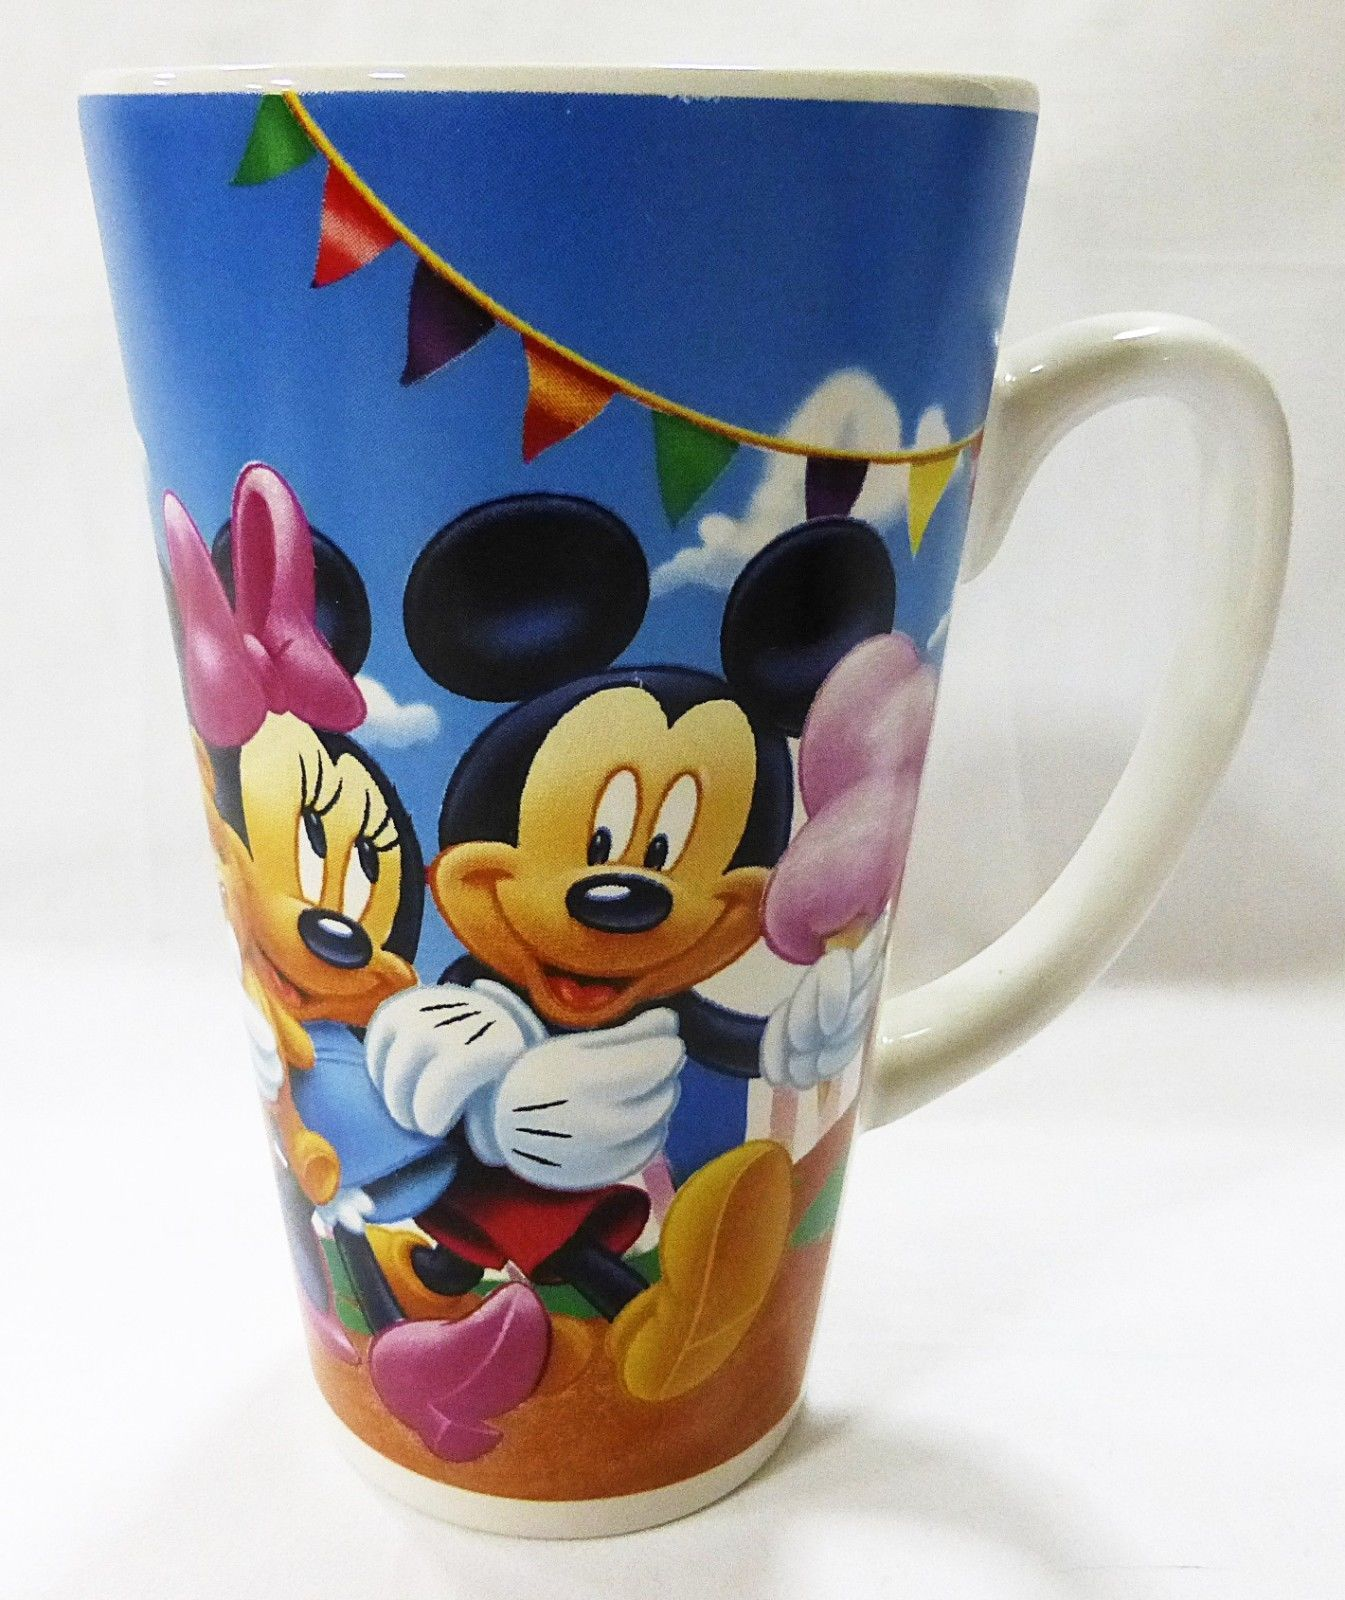 disney mug cup Gibson mickey mouse minnie mouse